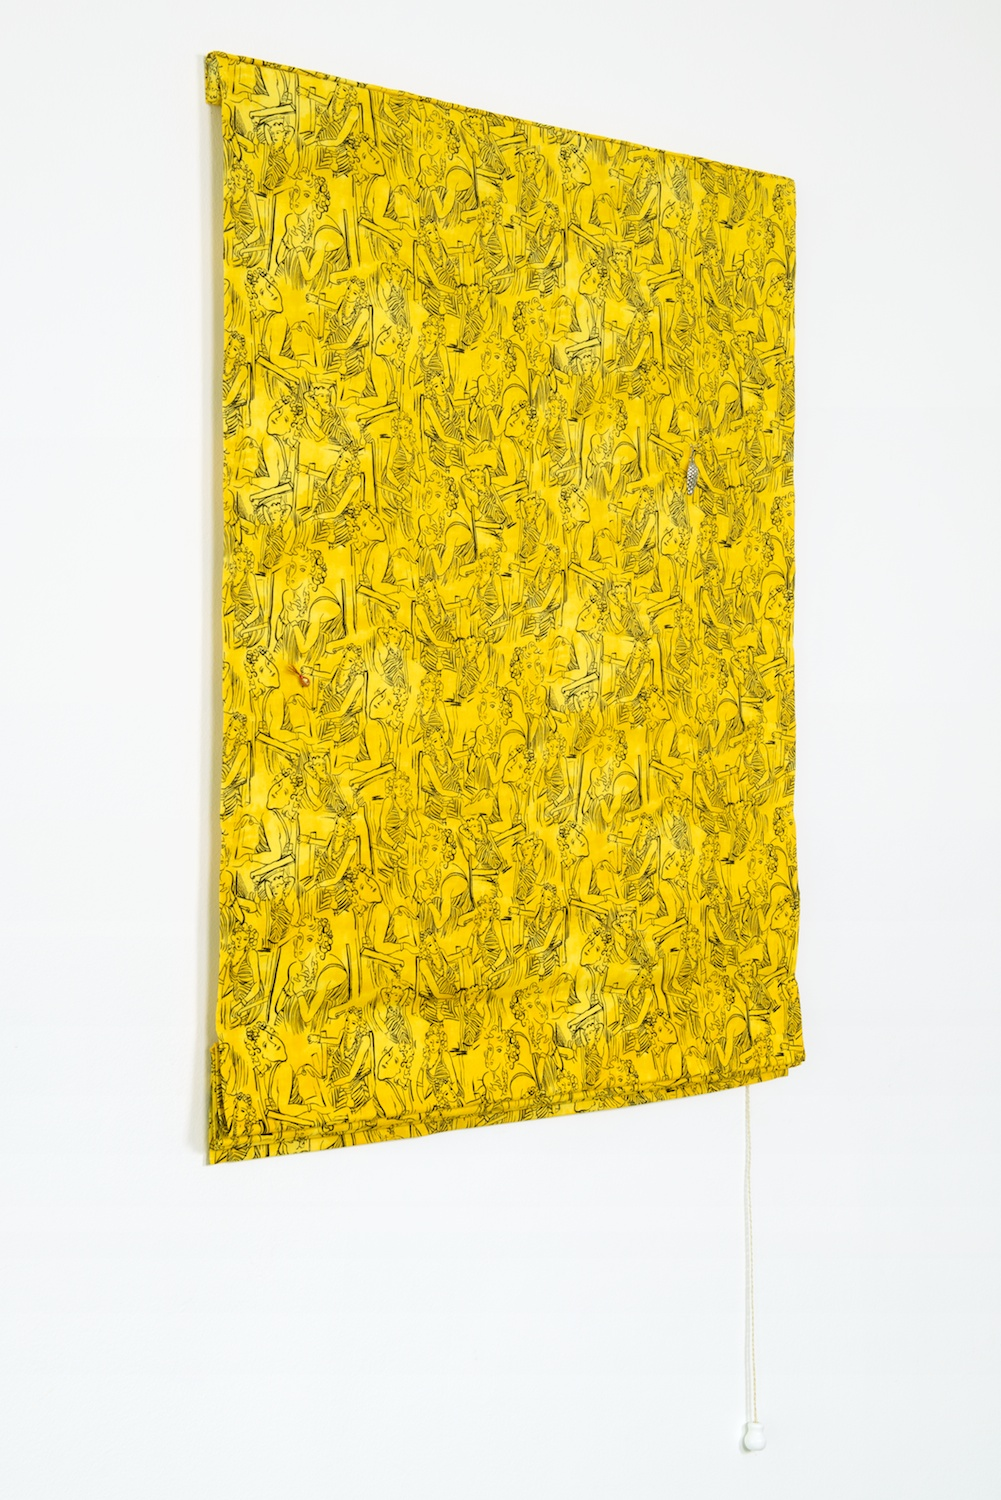 Paul Cowan  Untitled  2013 Fabric, lures, hardware 66h x 32w in  PC059